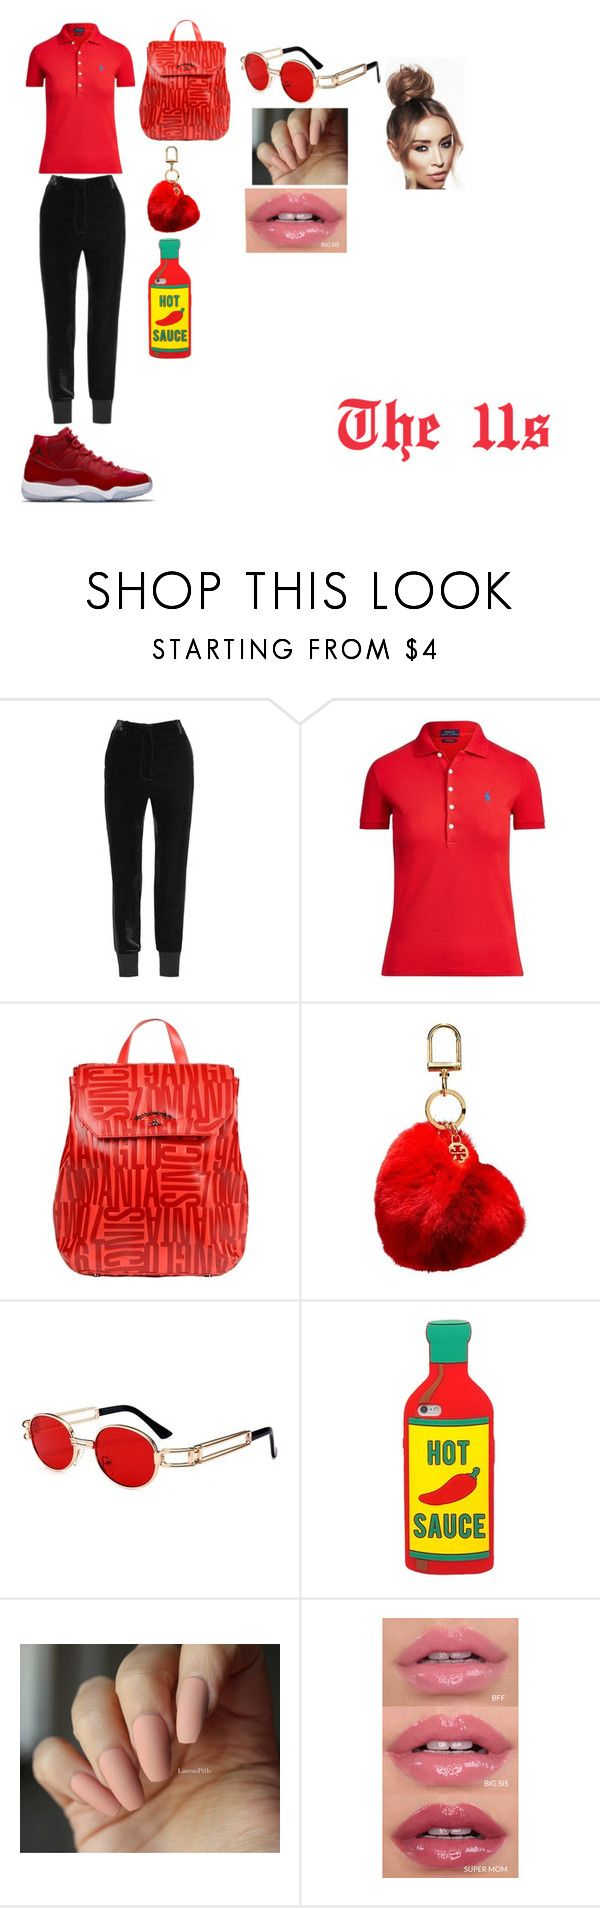 """""""The 11s"""" by arialaster on Polyvore featuring 3.1 Phillip Lim, Polo Ralph Lauren, Vivienne Westwood Anglomania and Tory Burch"""